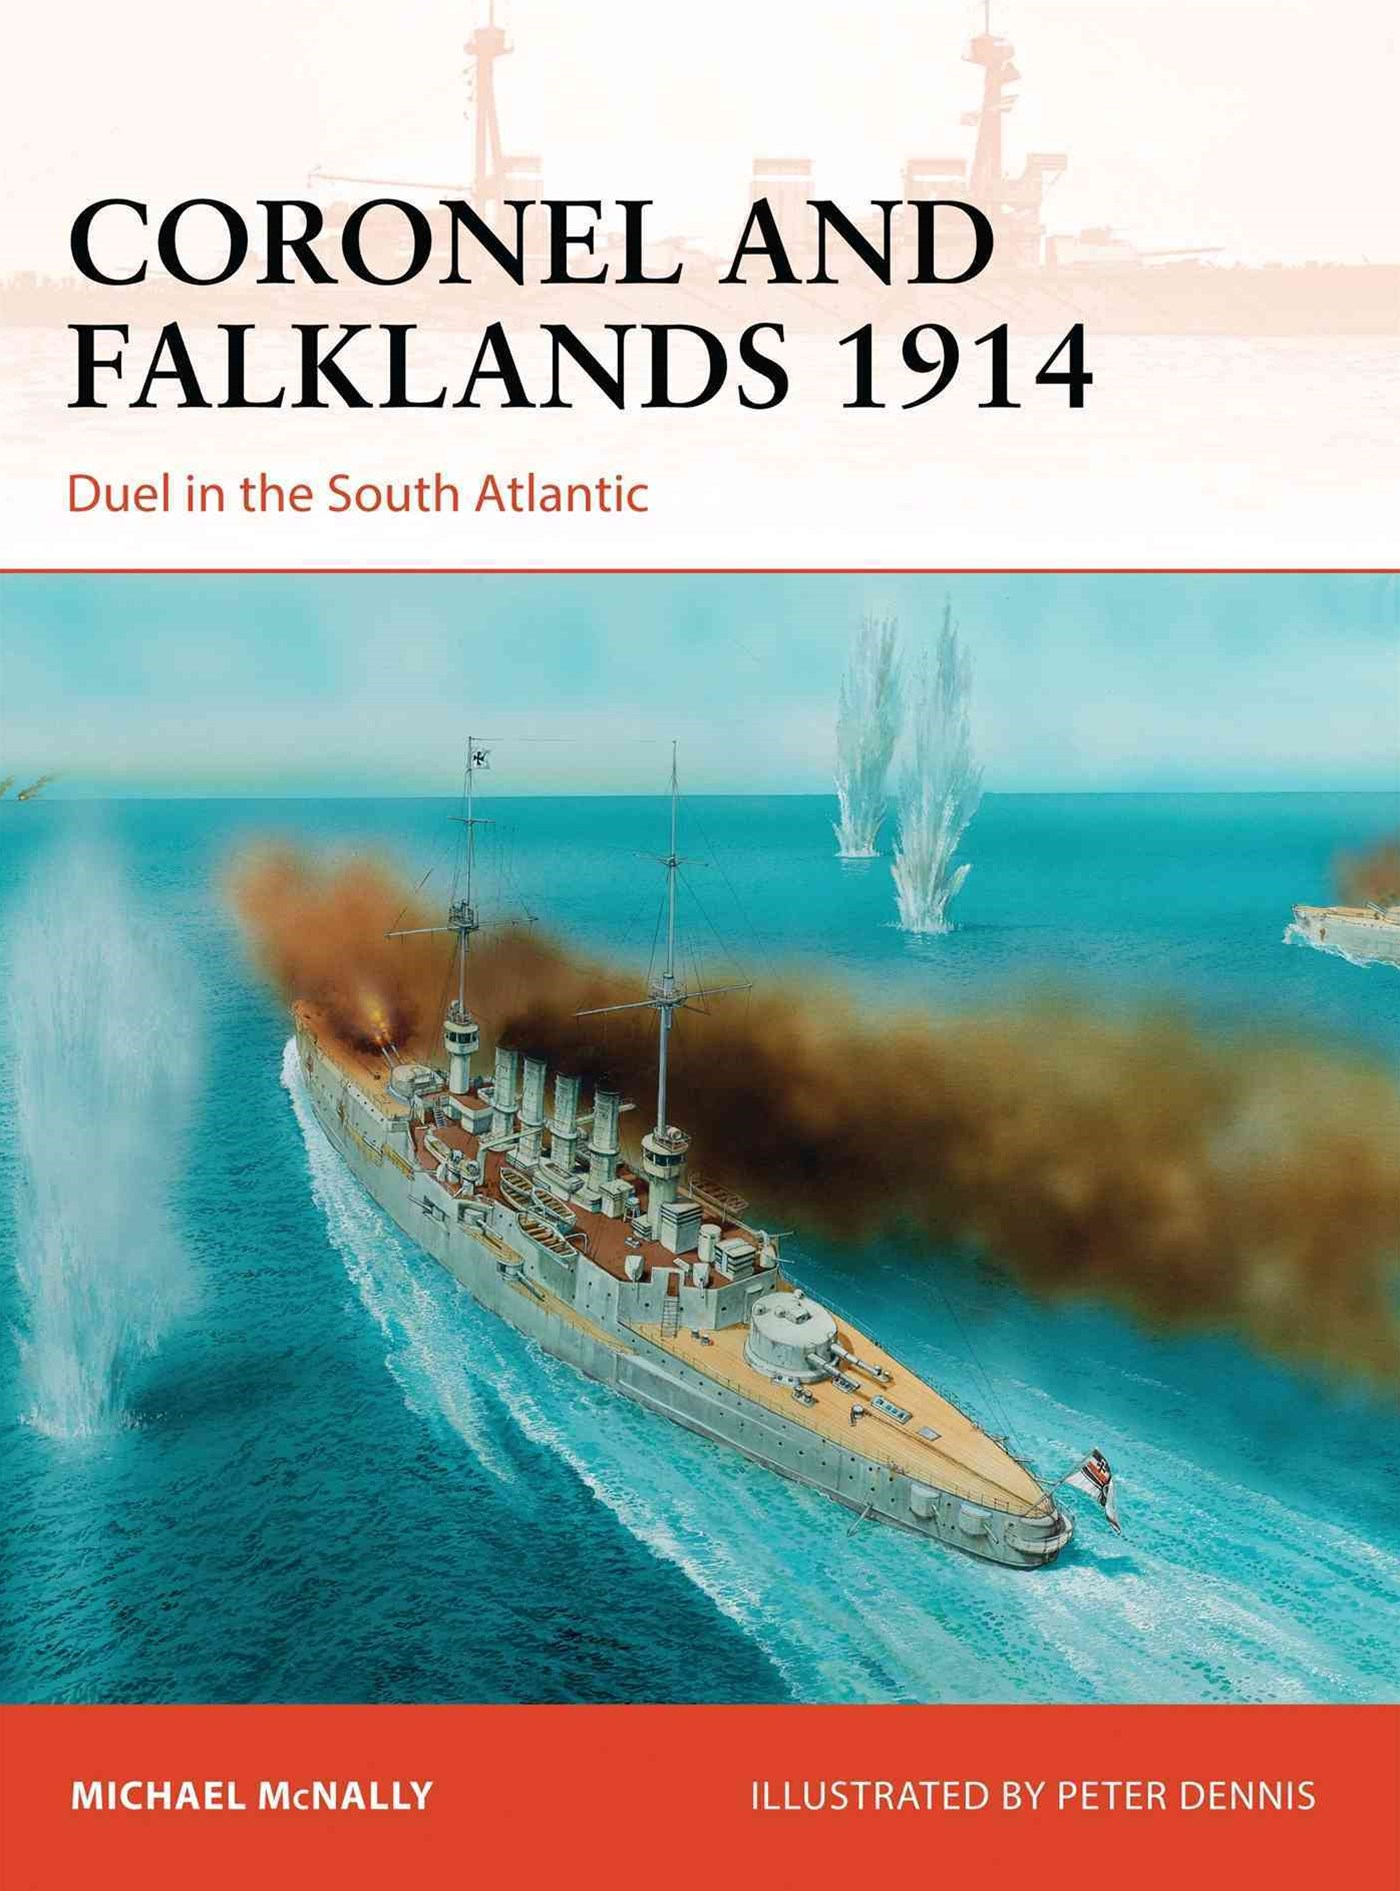 Coronel and Falklands 1914